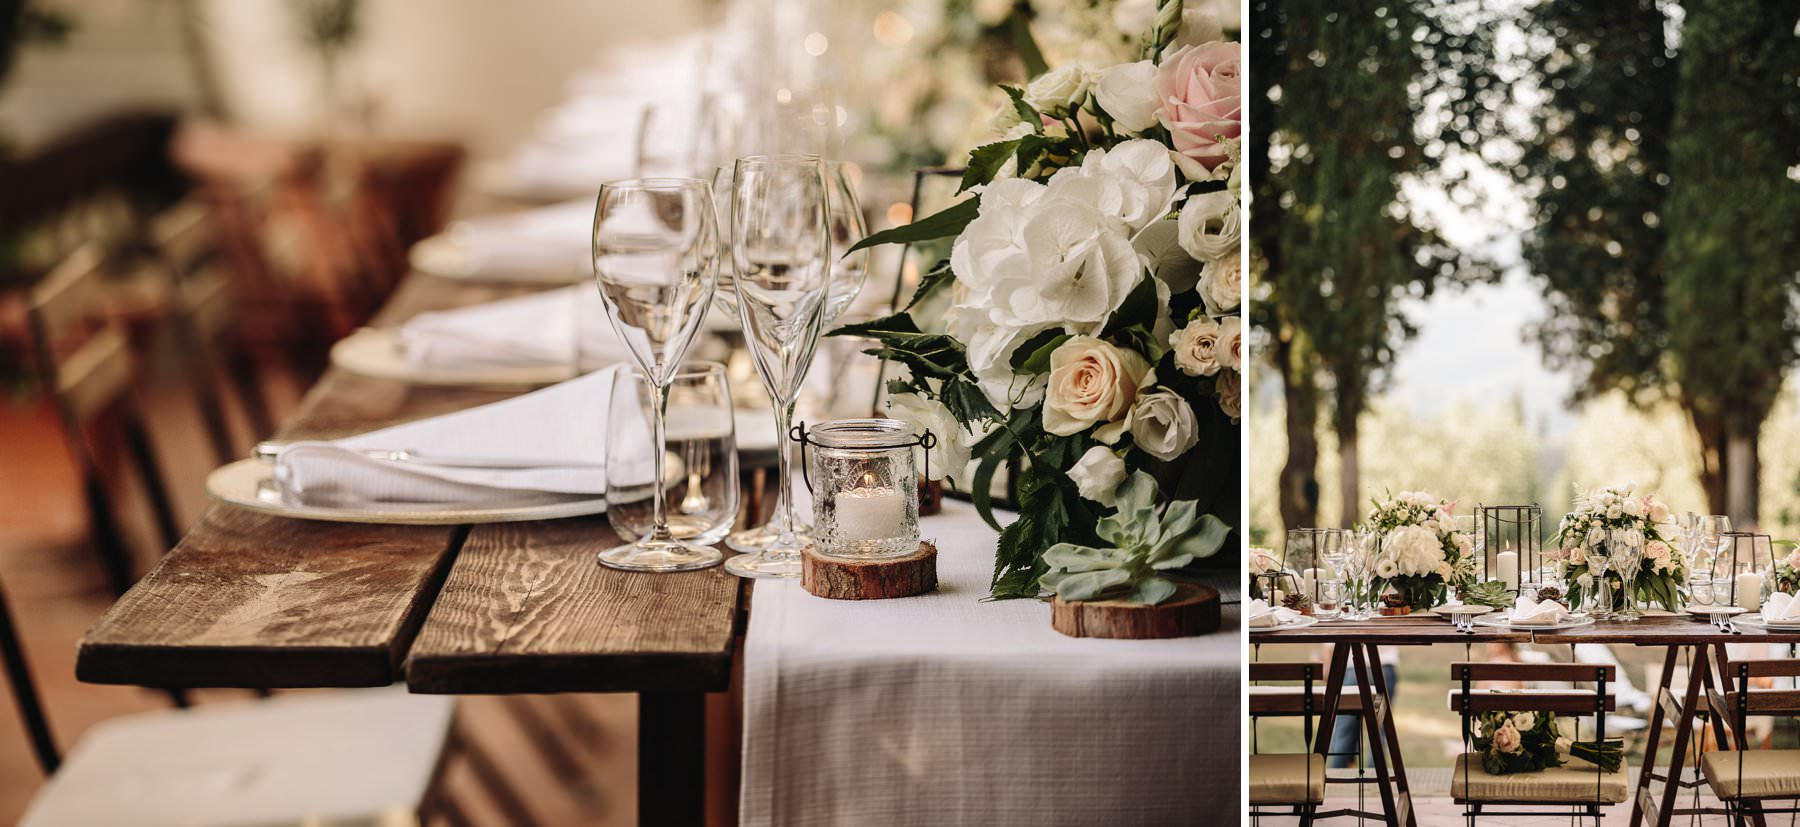 Lovely rustic country chic dinner setup decor at Villa Pisignano. Destination wedding in Tuscany countryside